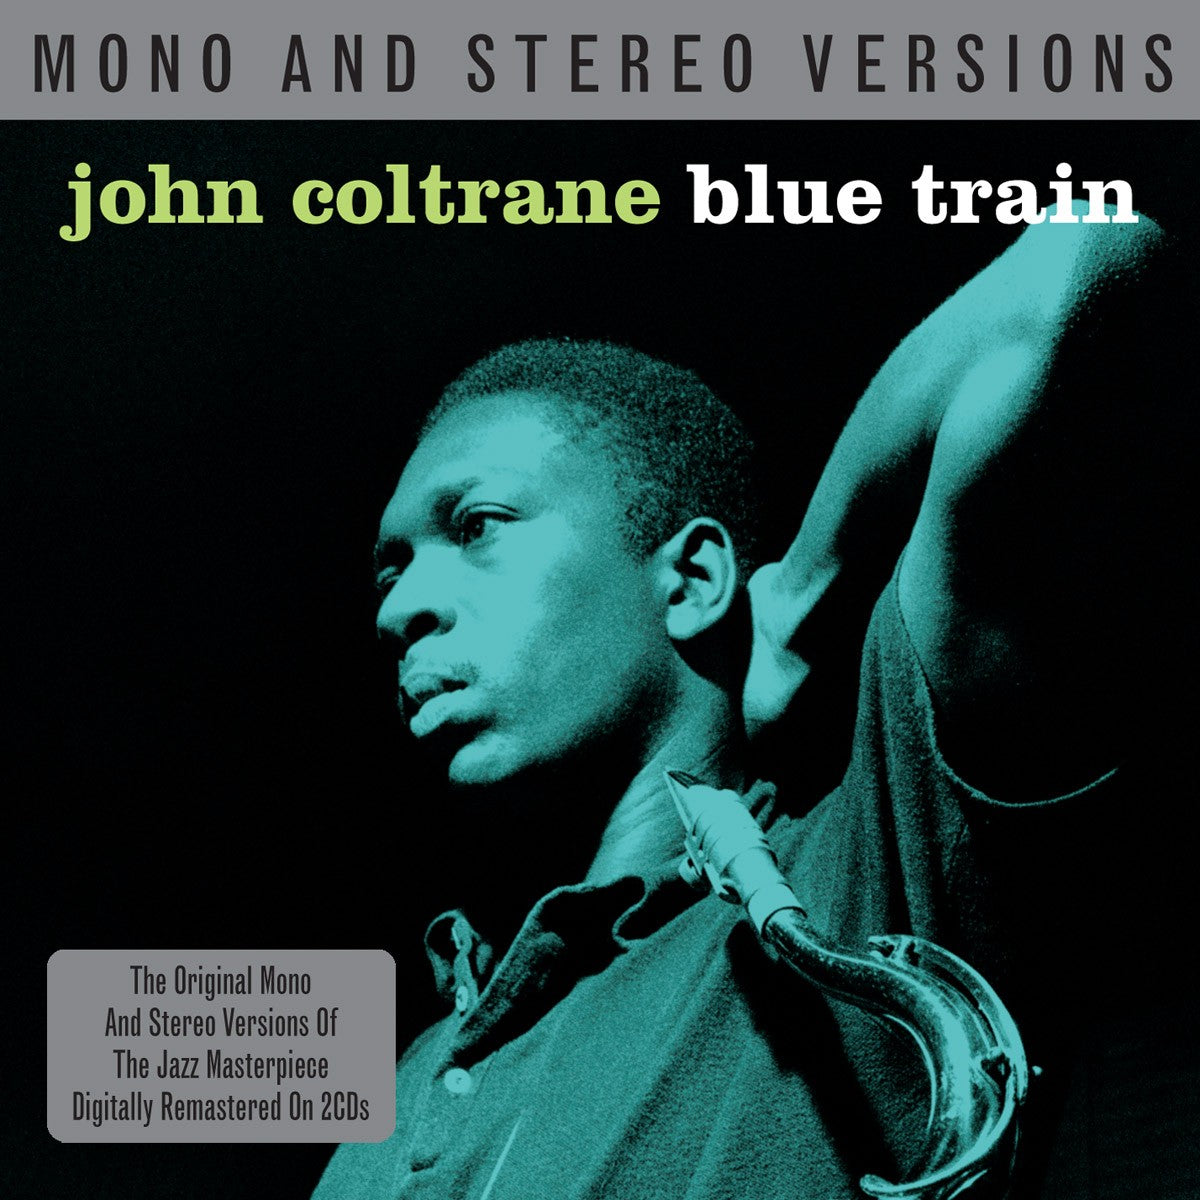 JOHN COLTRANE: BLUE TRAIN (2 CDS, MONO & STEREO)